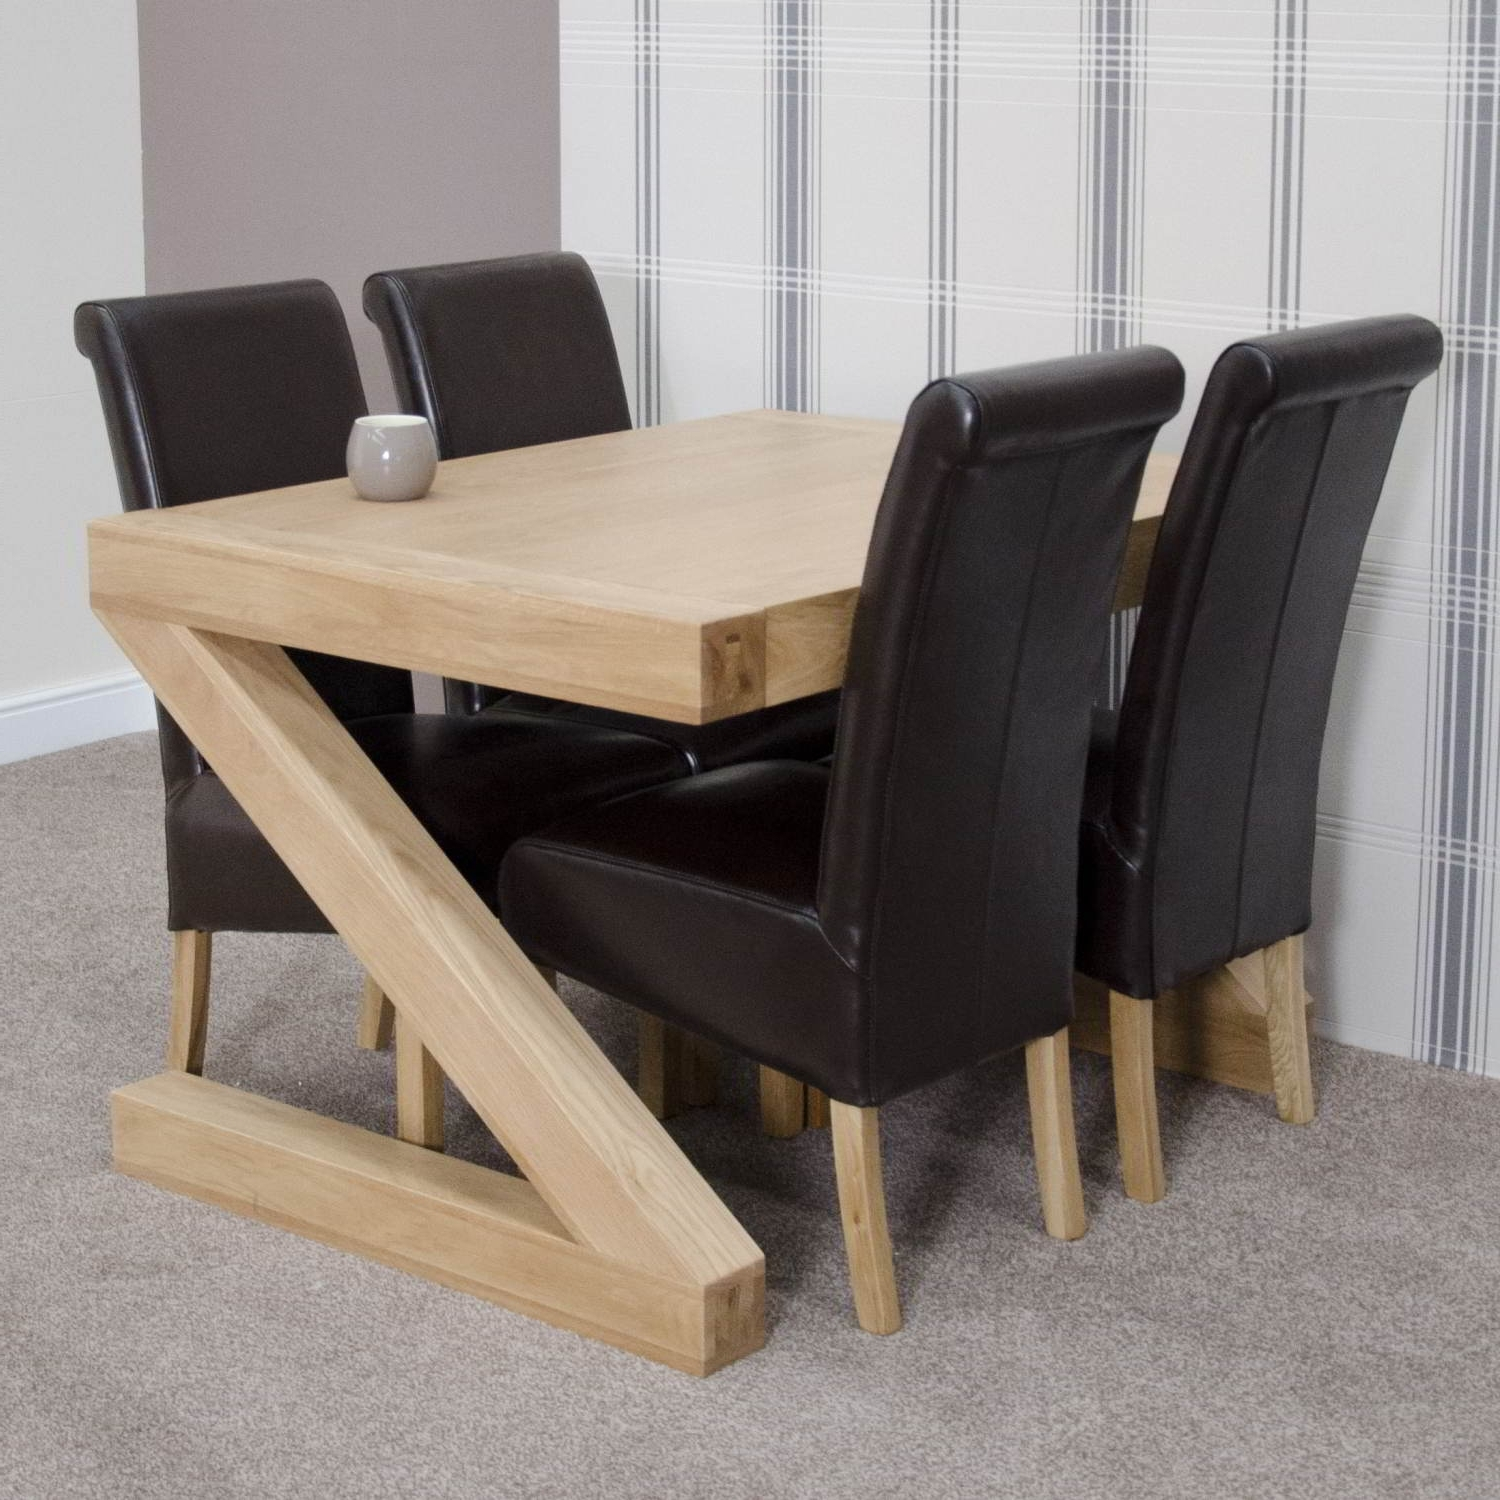 4 Seat Dining Tables Regarding Fashionable Z Solid Oak Designer Furniture Dining Table And Four Chairs Set (View 6 of 25)